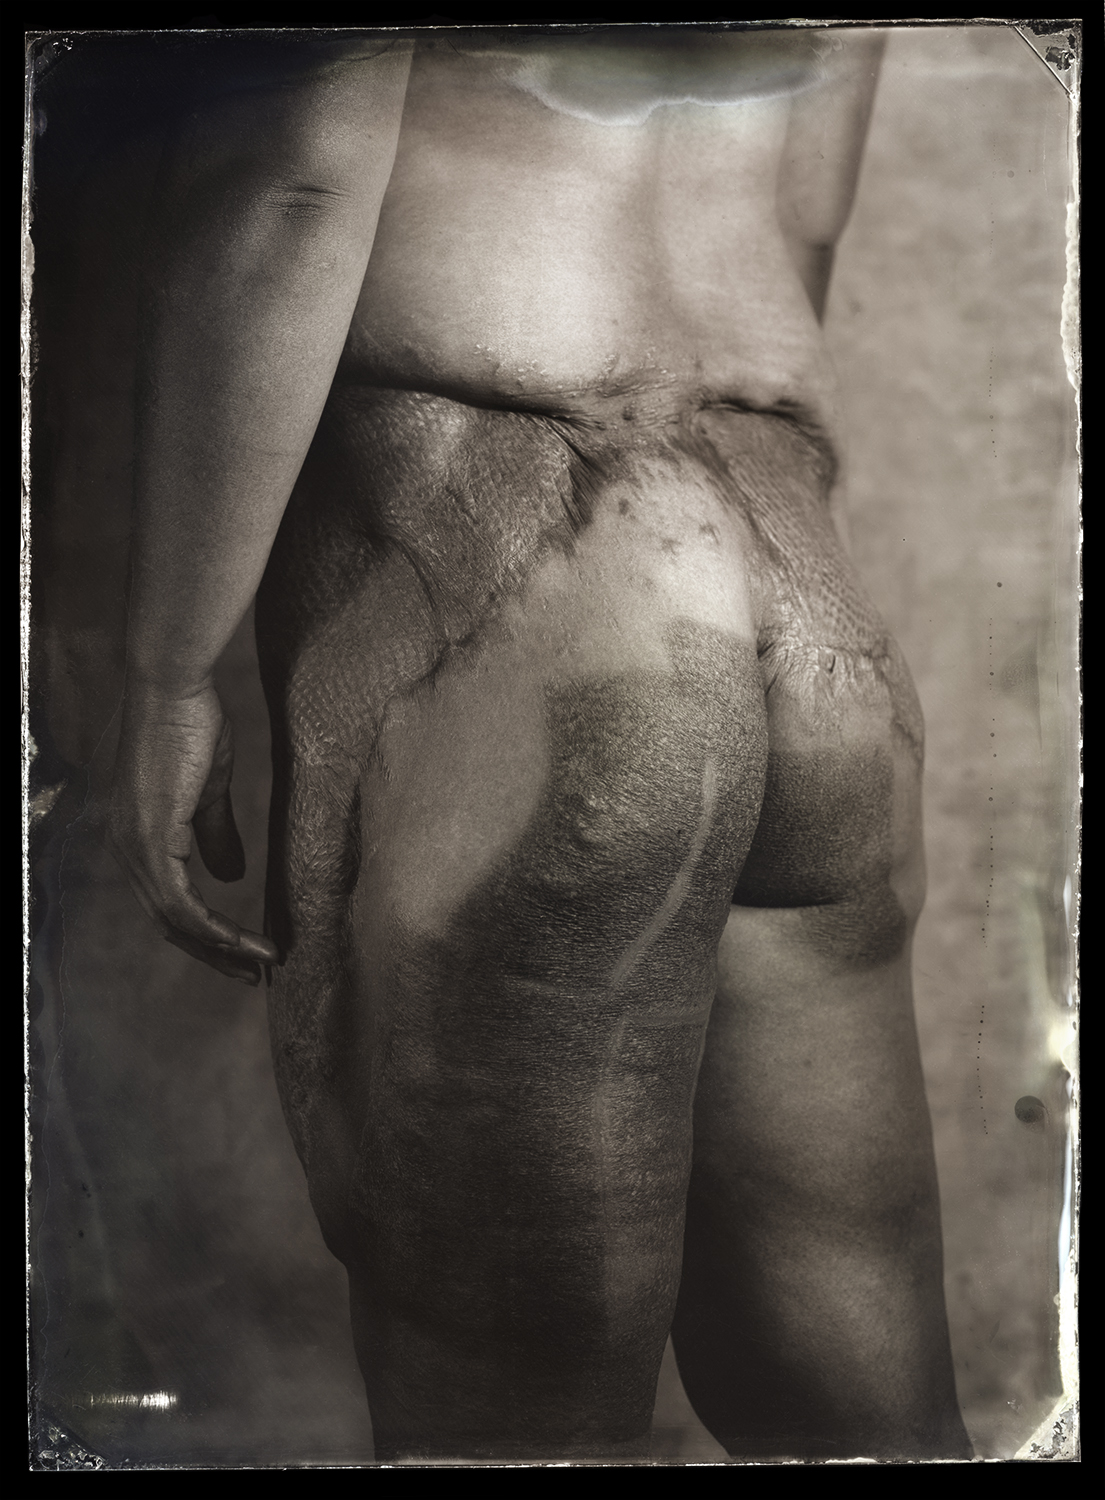 Detail of burns on lower back (Pic: Clement Marion)